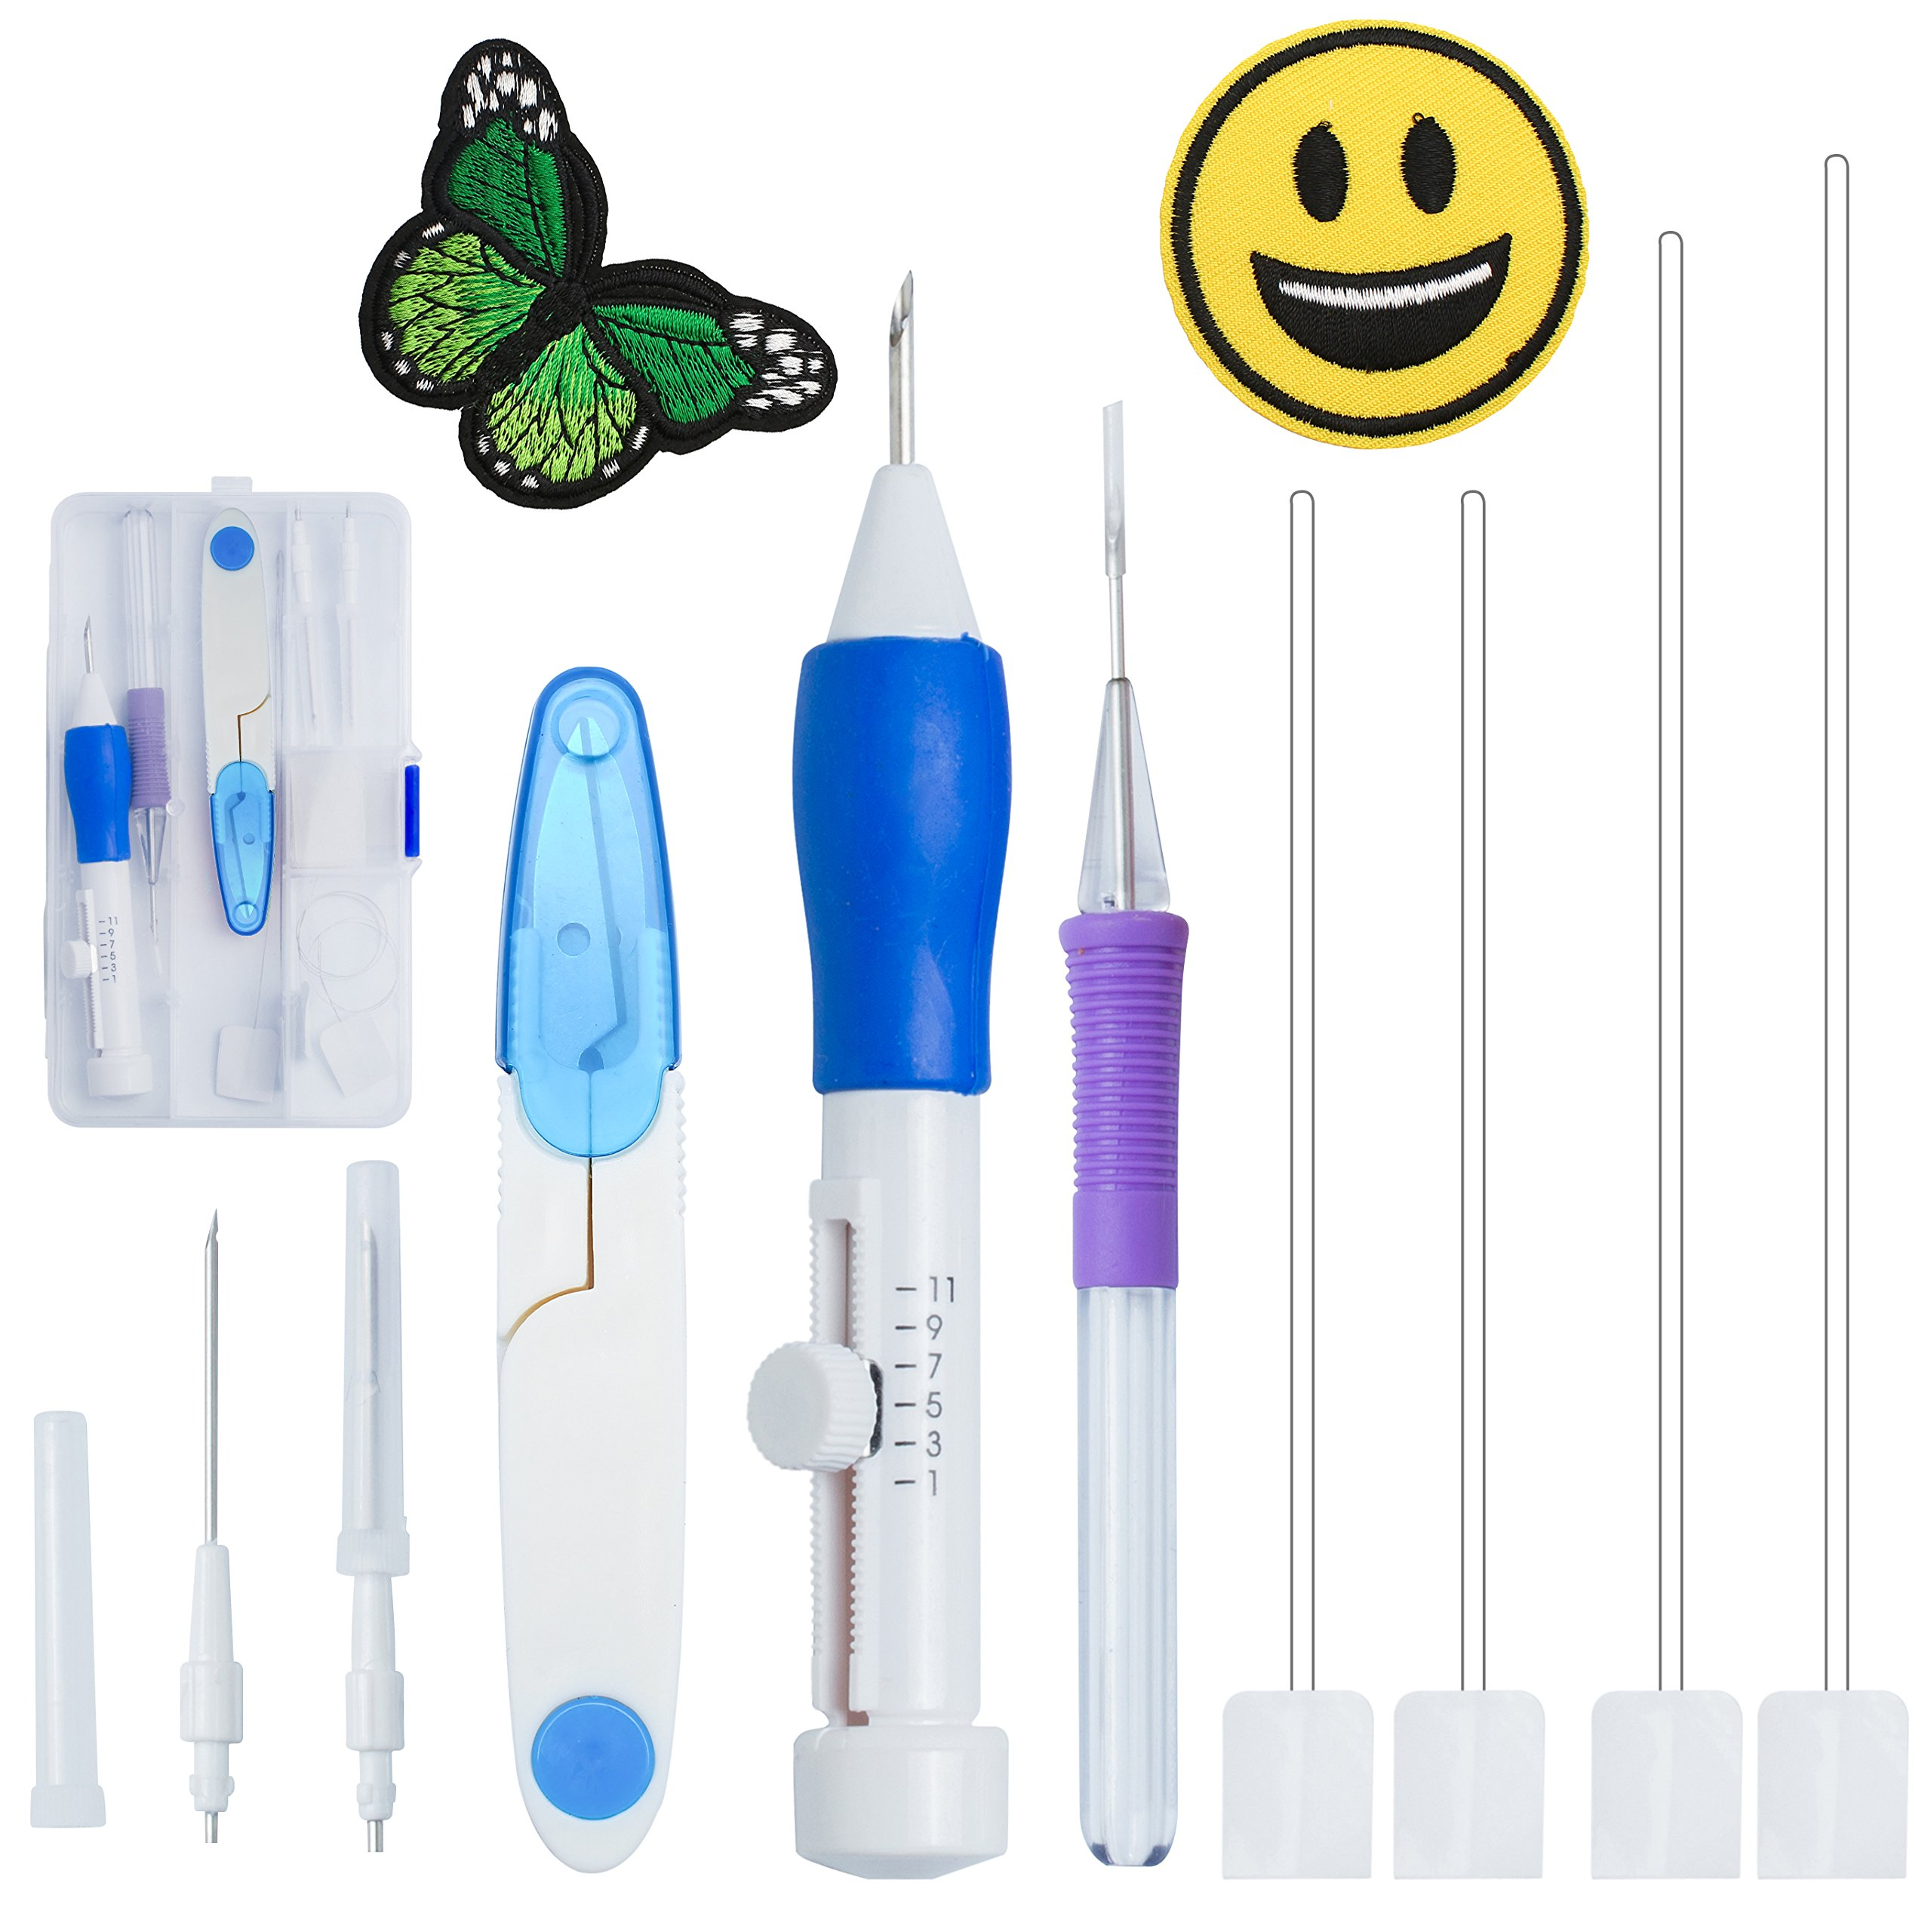 DIY Embroidery Pen Punch Needle Tool Set Craft Knitting Sewing Kit Tools